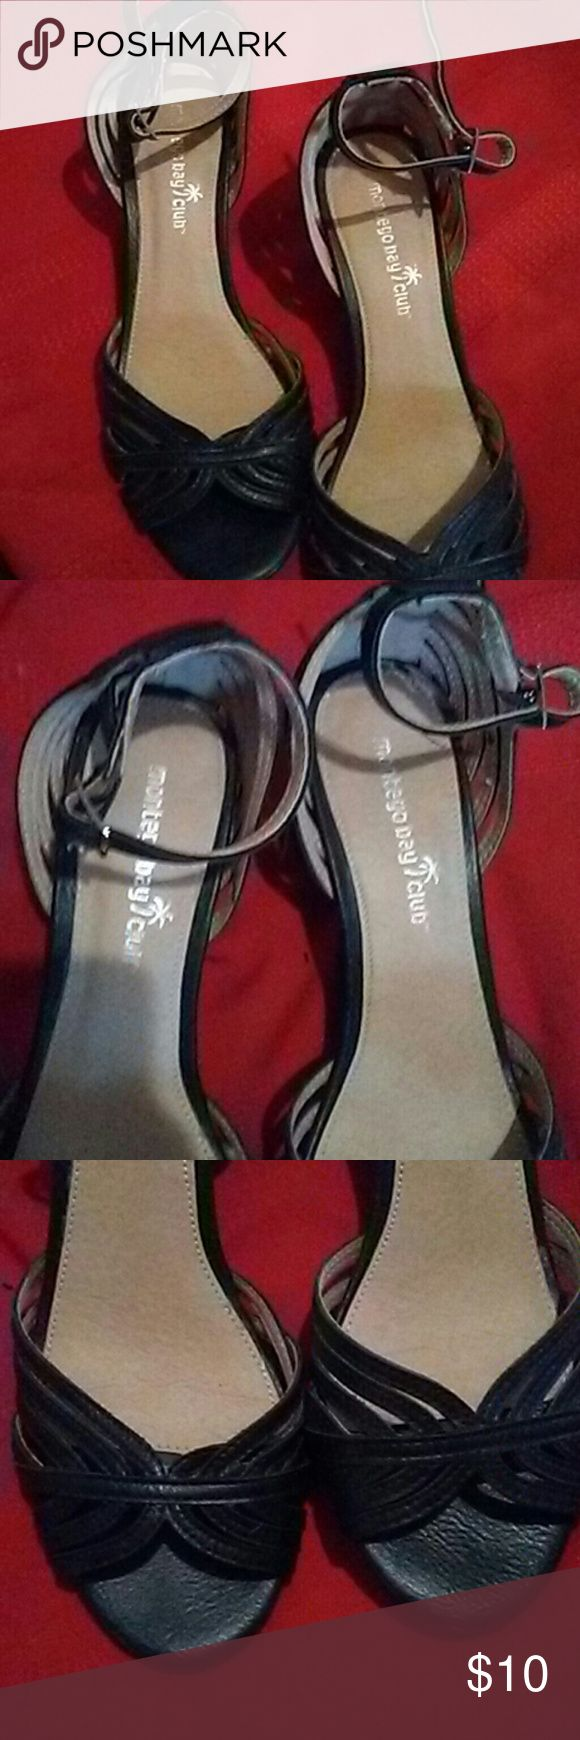 Black dress shoes These are great if you like a heal. I do not. Staps and open toed. montego bay club Shoes Heels